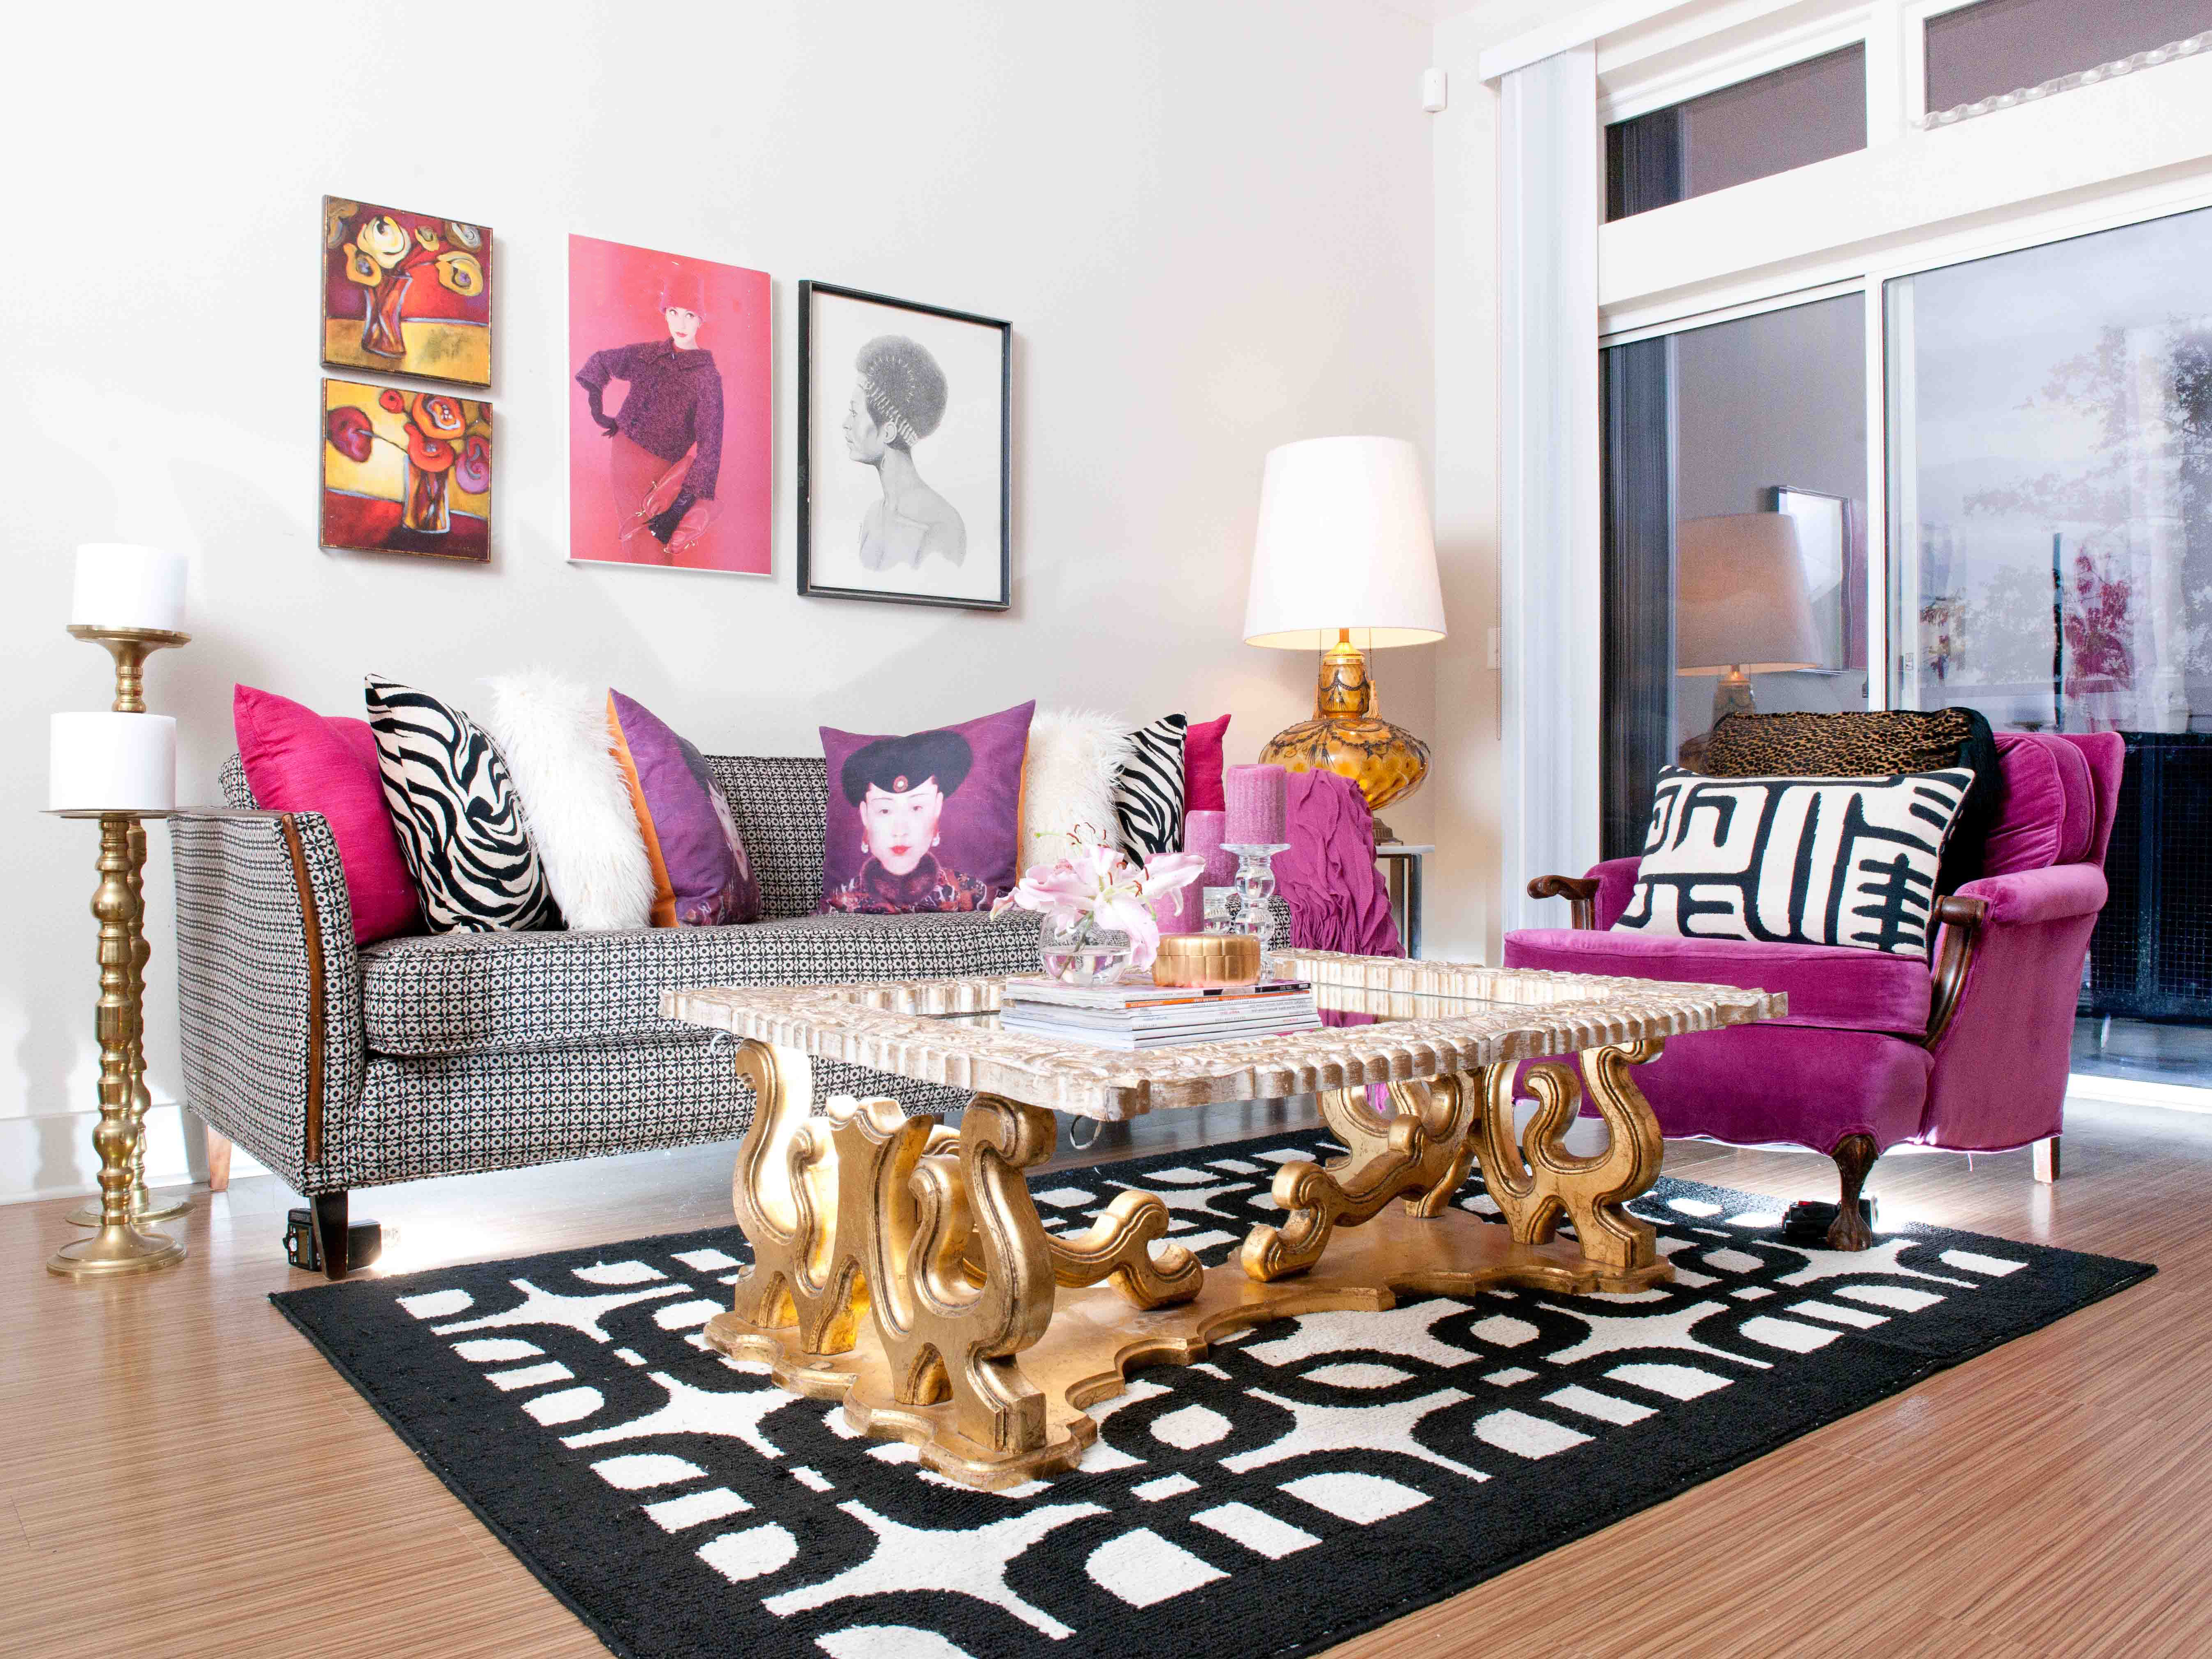 Attractive Chair Cushions Oriental Design Theme (View 11 of 11)